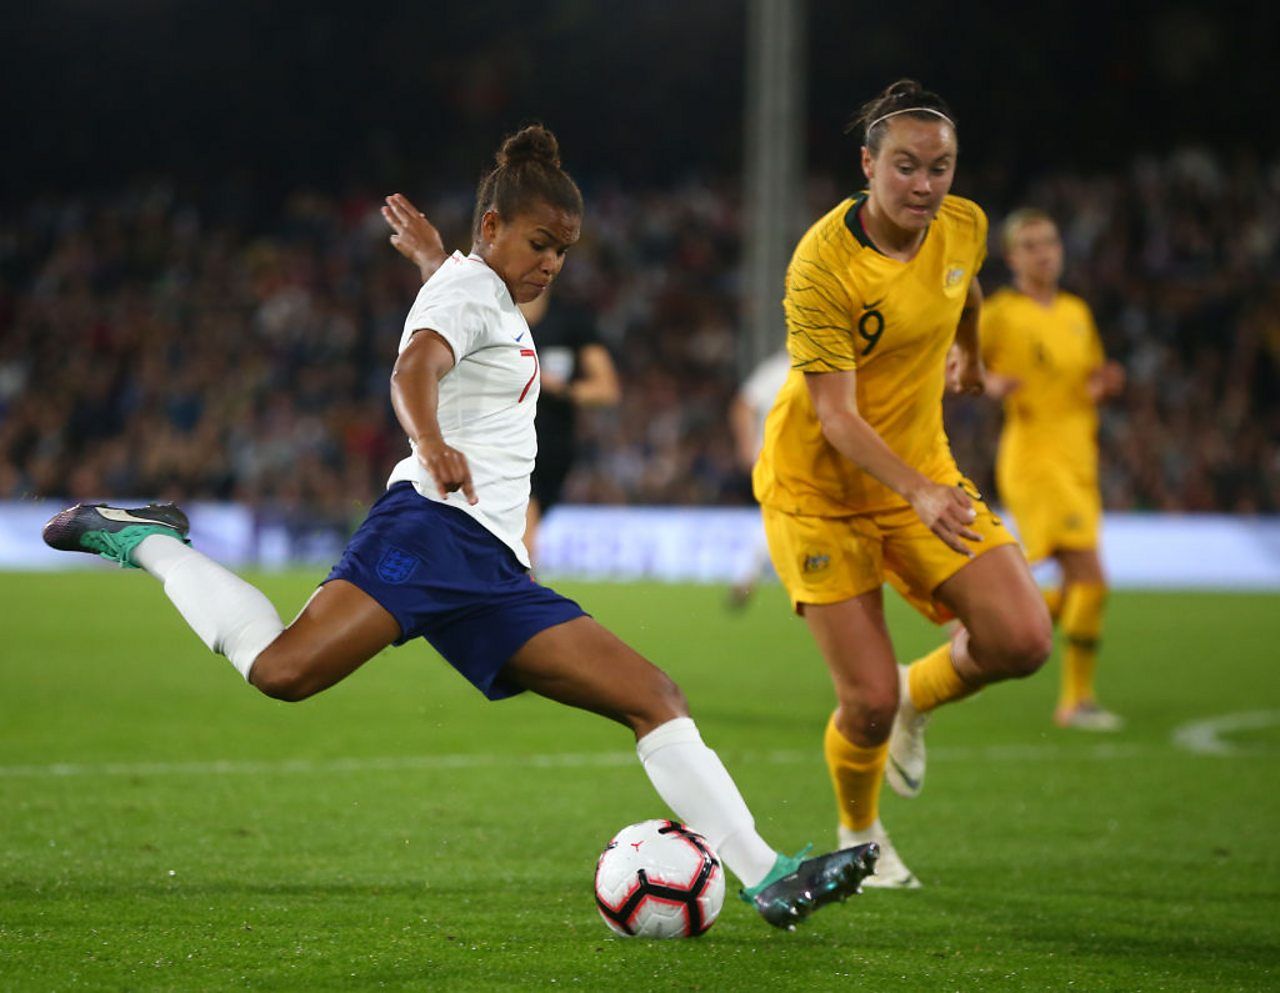 Nikita Parris playing for England